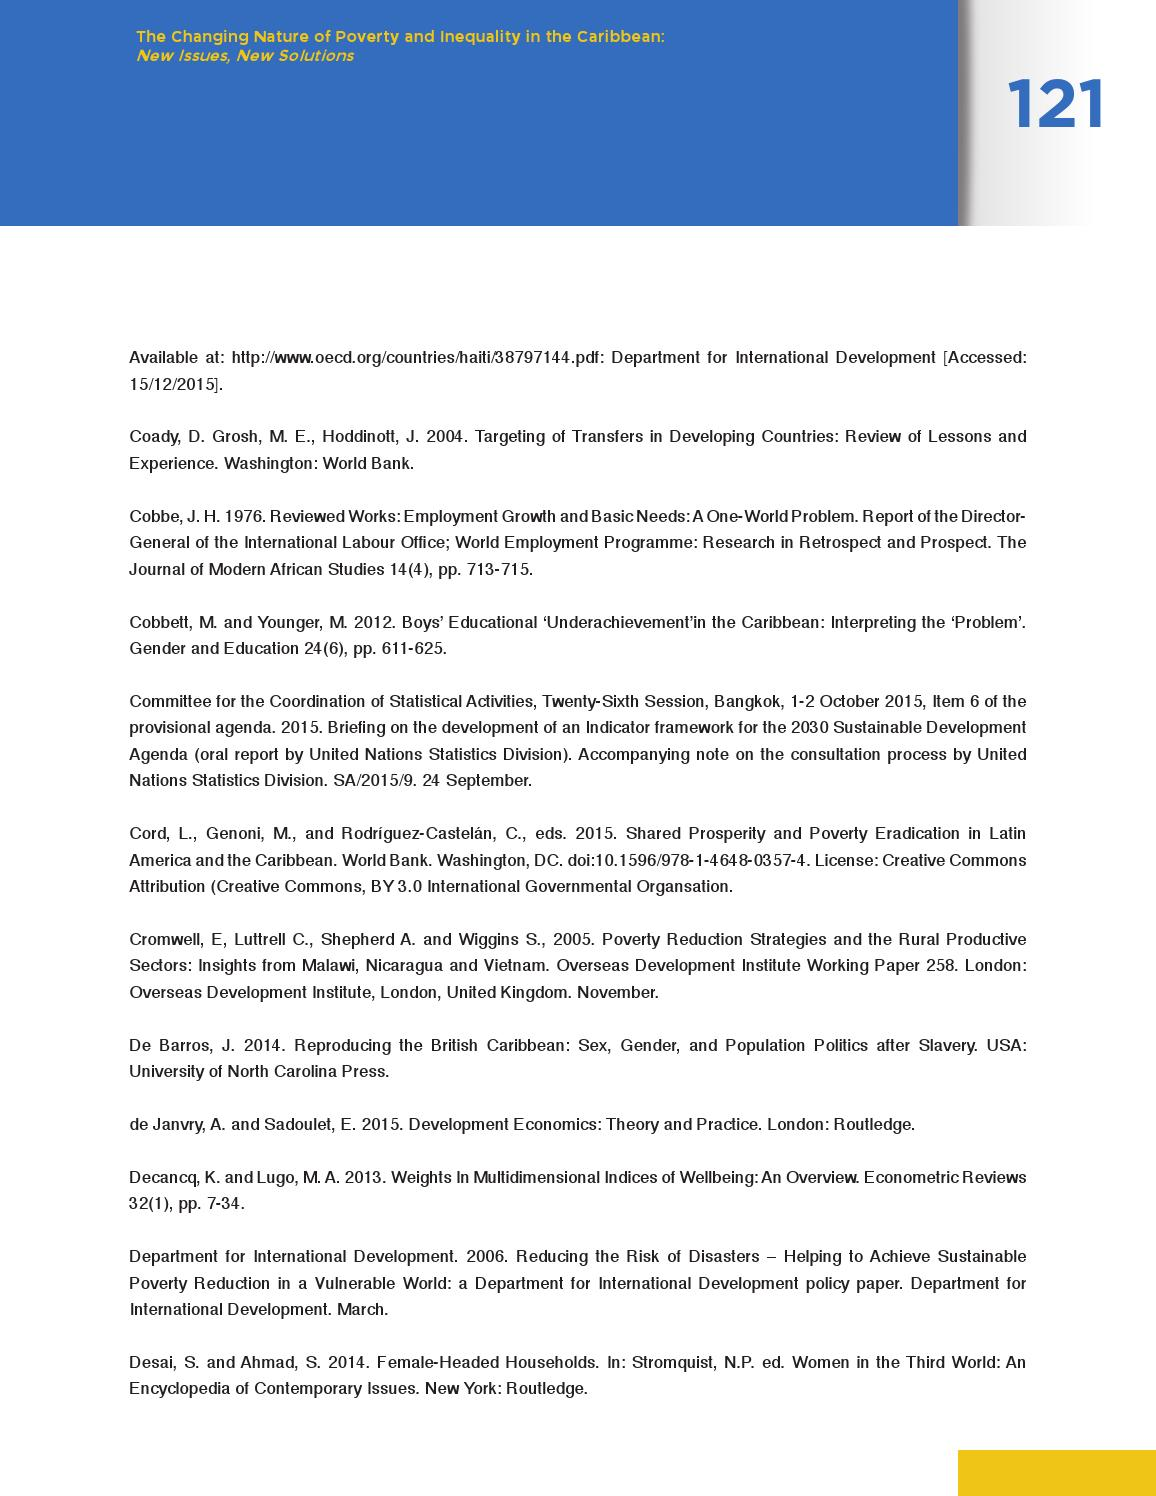 010 Research Paper Page 121 Poverty Archaicawful Pdf In India Education And Full